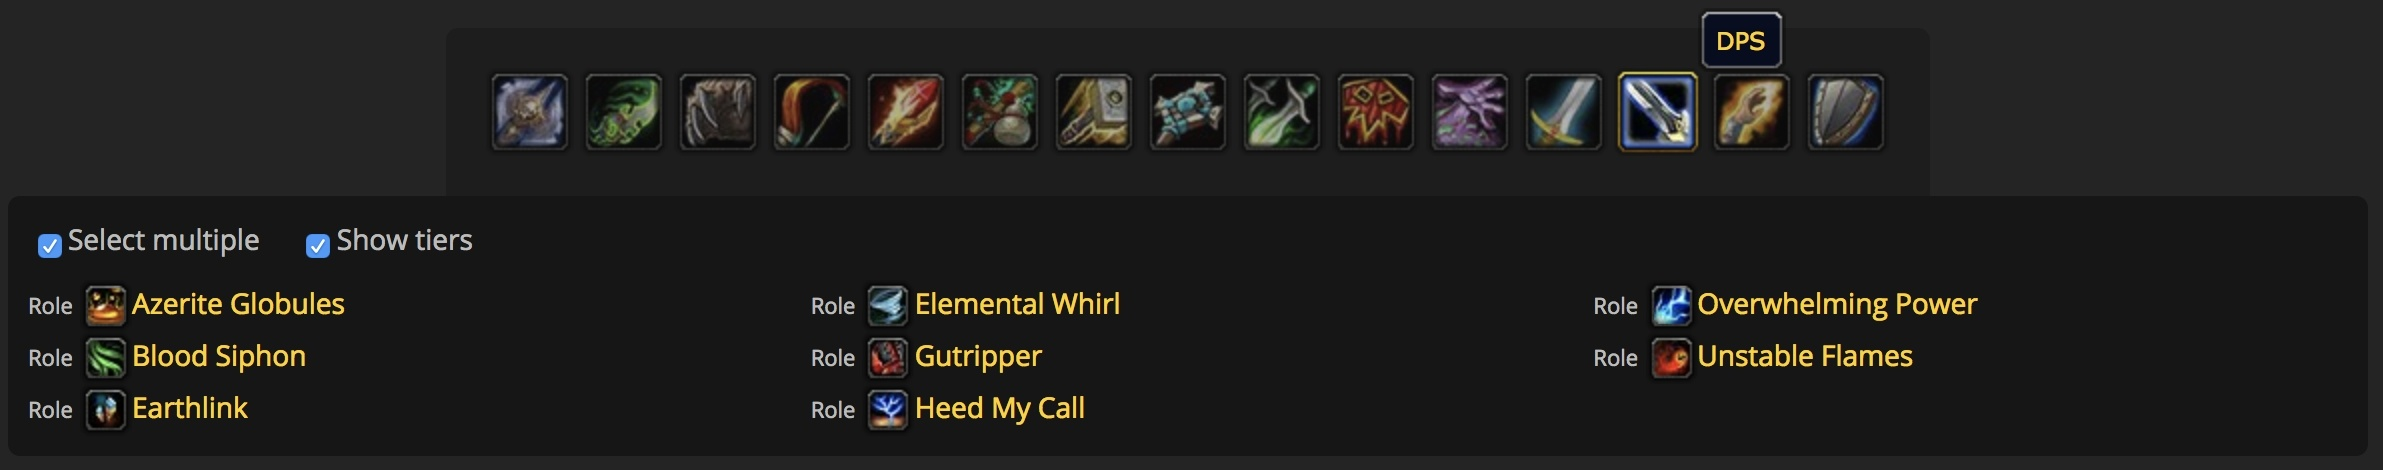 Azerite Power Finder Tool - Look Up Armor with Specific Azerite